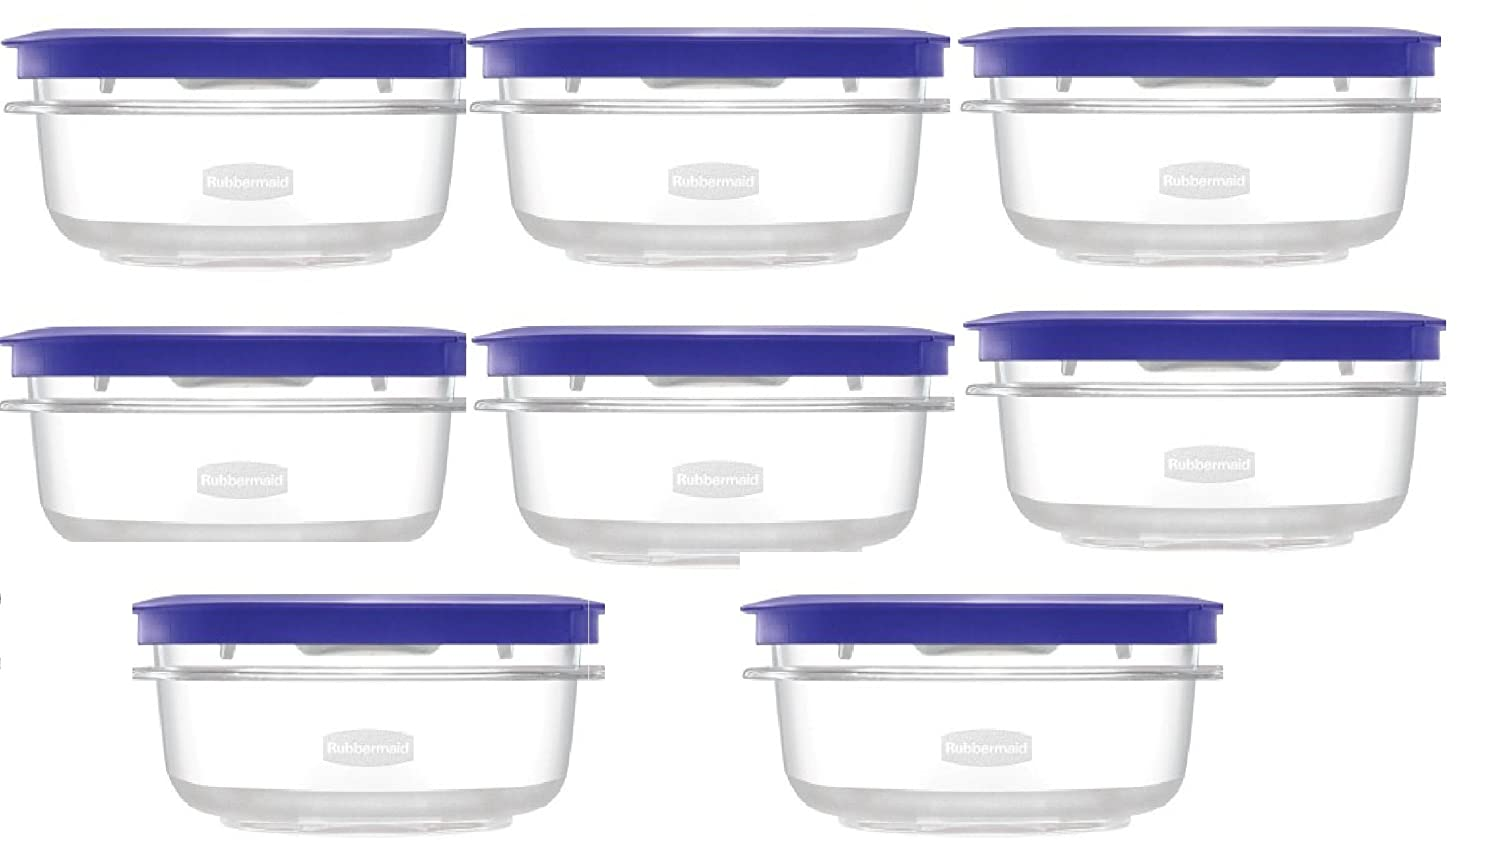 Rubbermaid Premier Plastic Food Storage Container - Iris Purple - 1.25 Cup - Set of 4